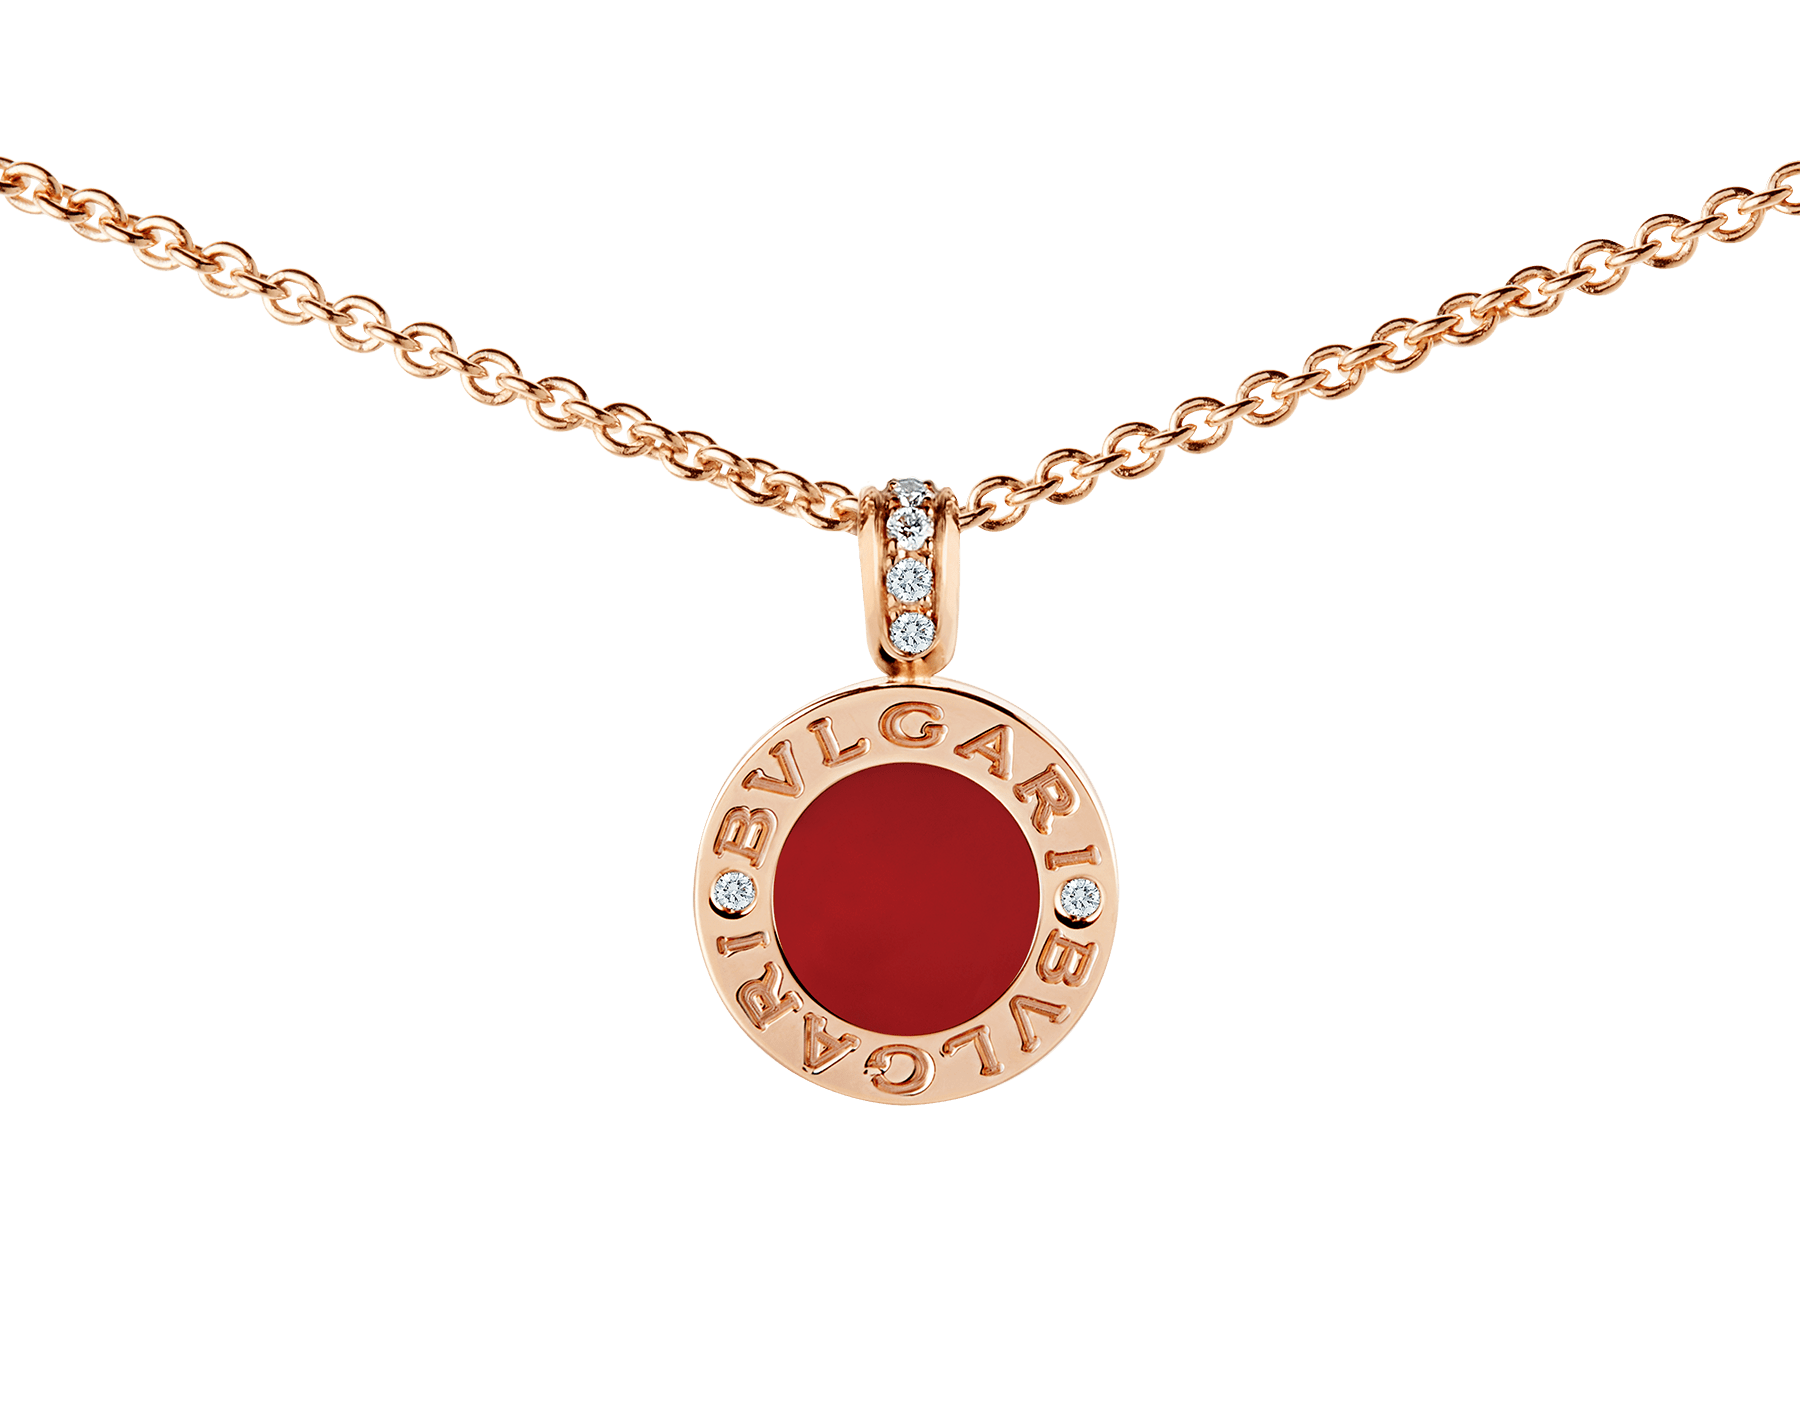 BVLGARI BVLGARI necklace with 18 kt rose gold chain and pendant, set with carnelian and mother-of-pearl discs and with details in pavé diamonds. 352883 image 3